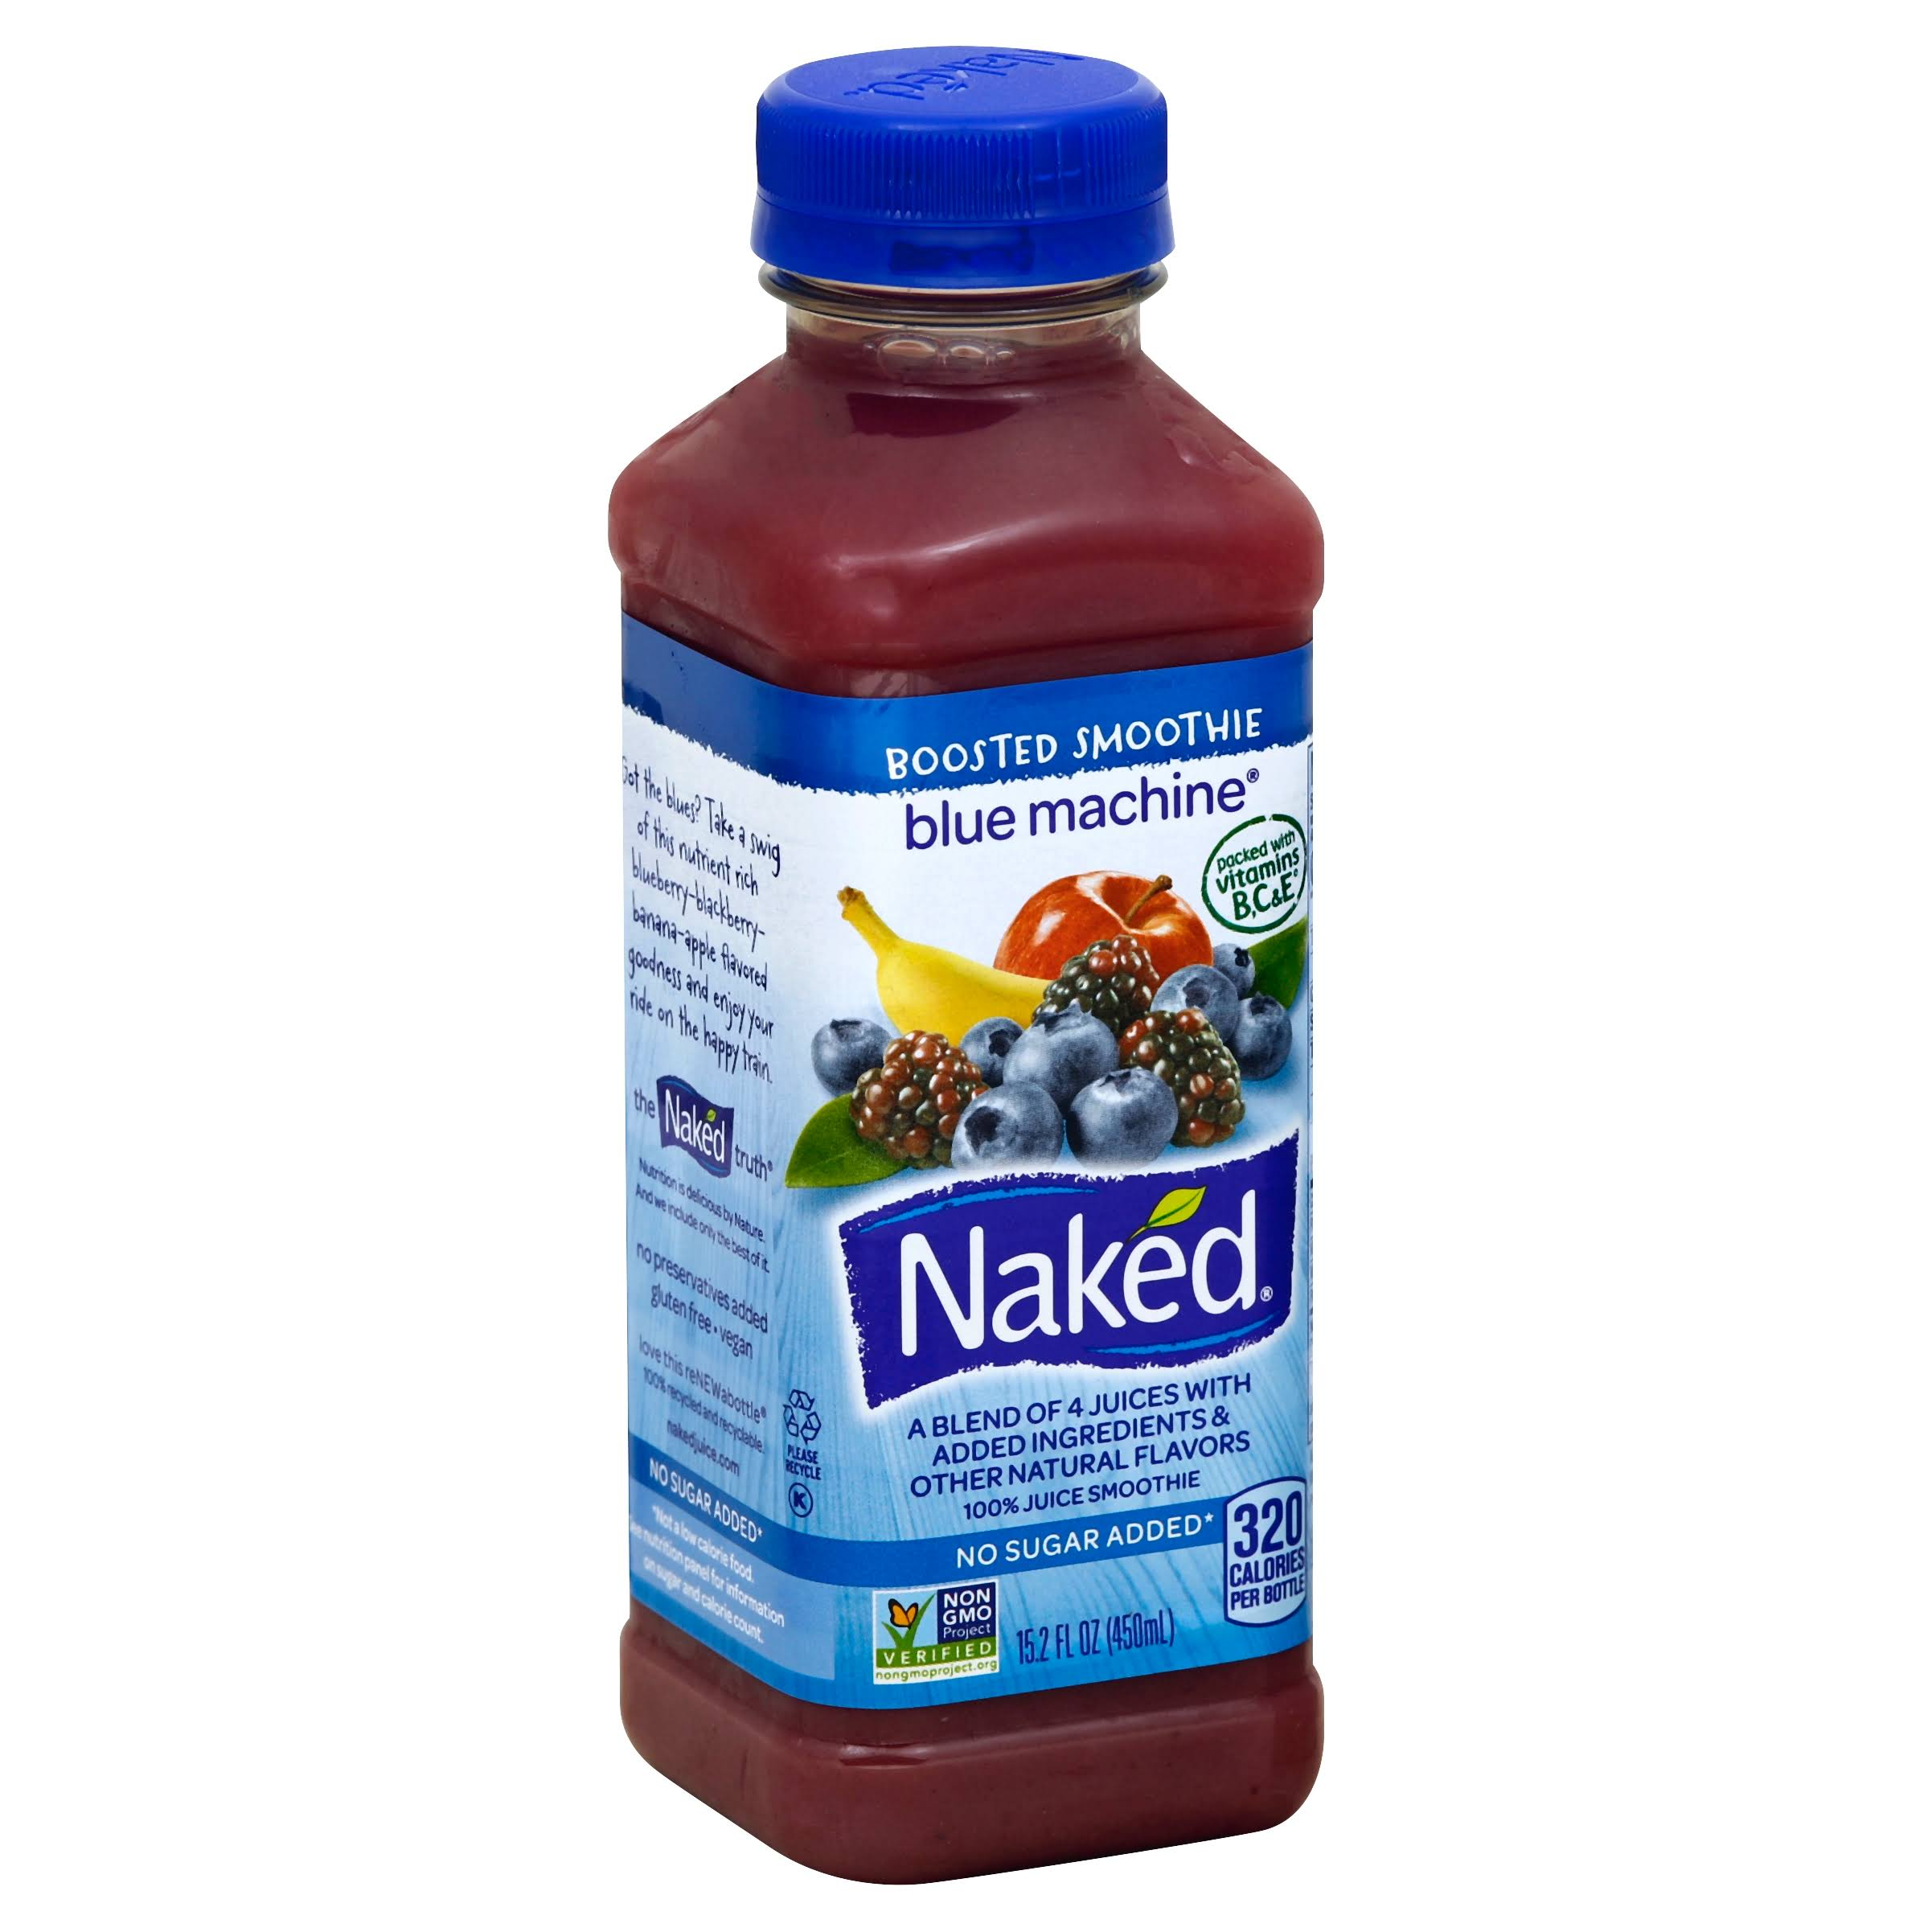 Naked Blue Machine 100% Juice Smoothie - 15.2 fl oz